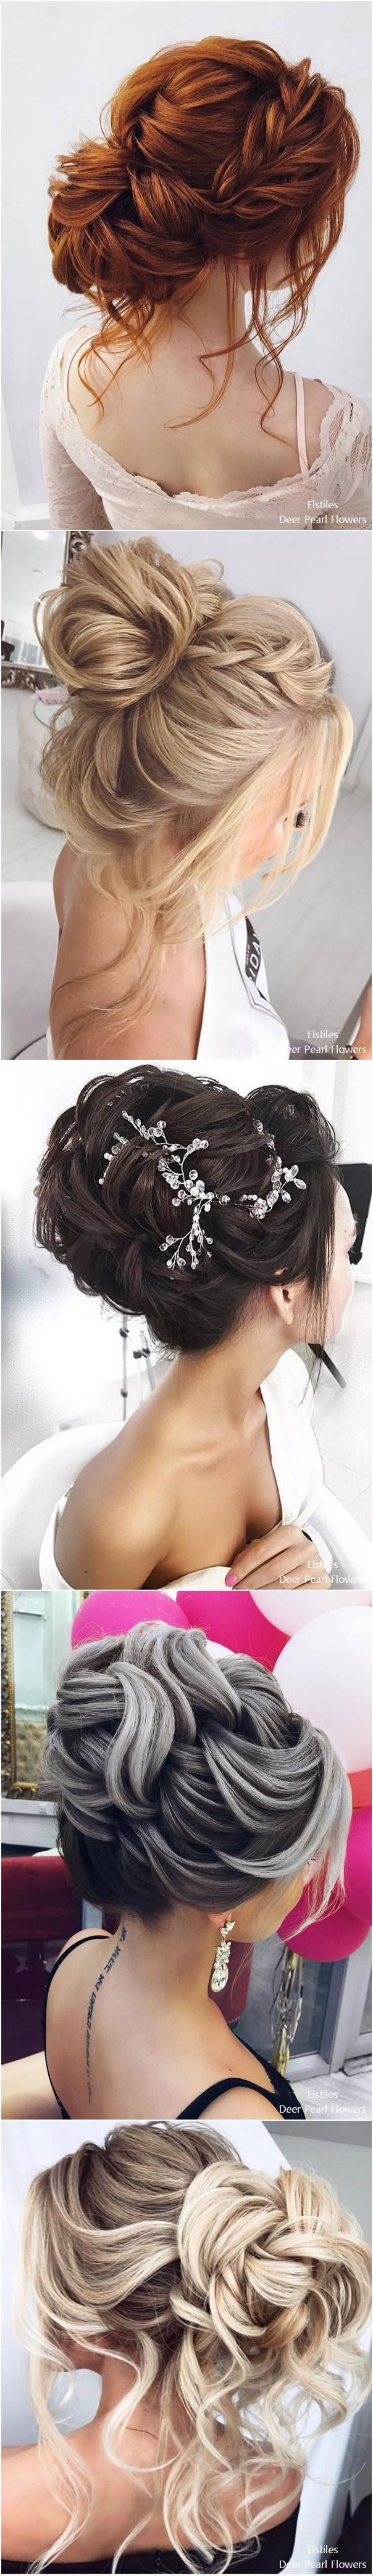 #BeautifulWeddingHairStyles #weddinghairstyles